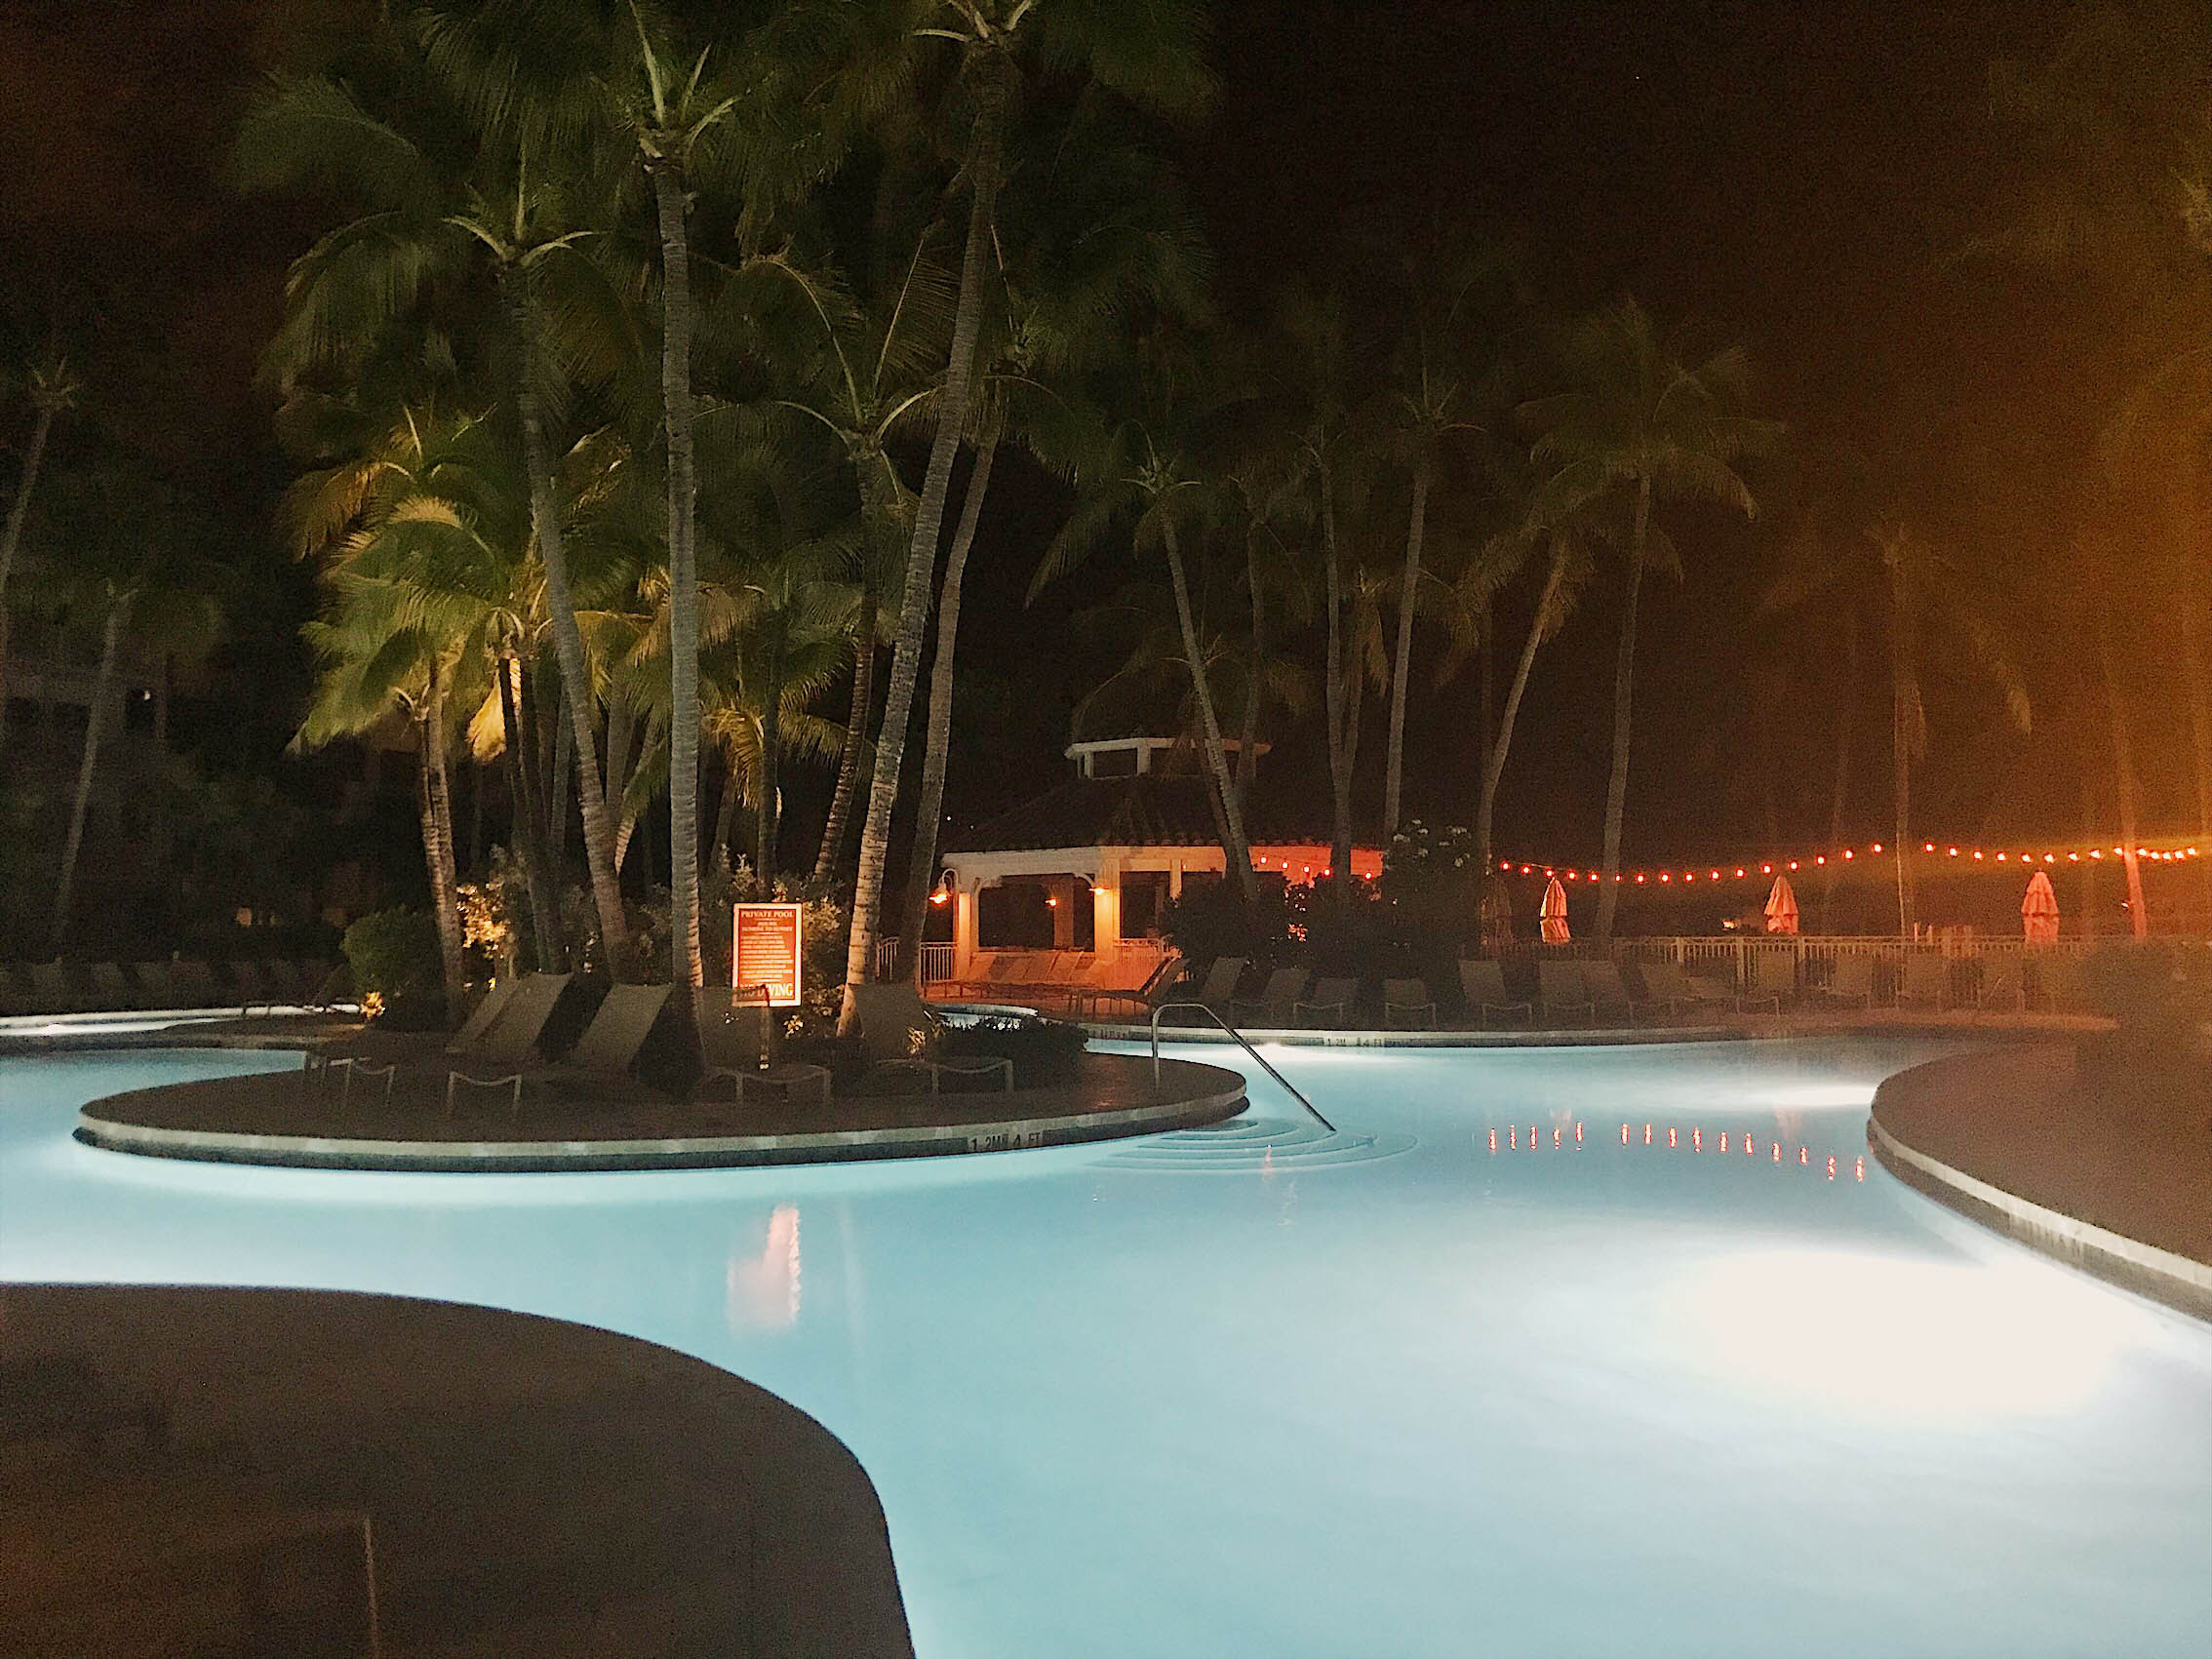 lagoon pool at night turtle lighting